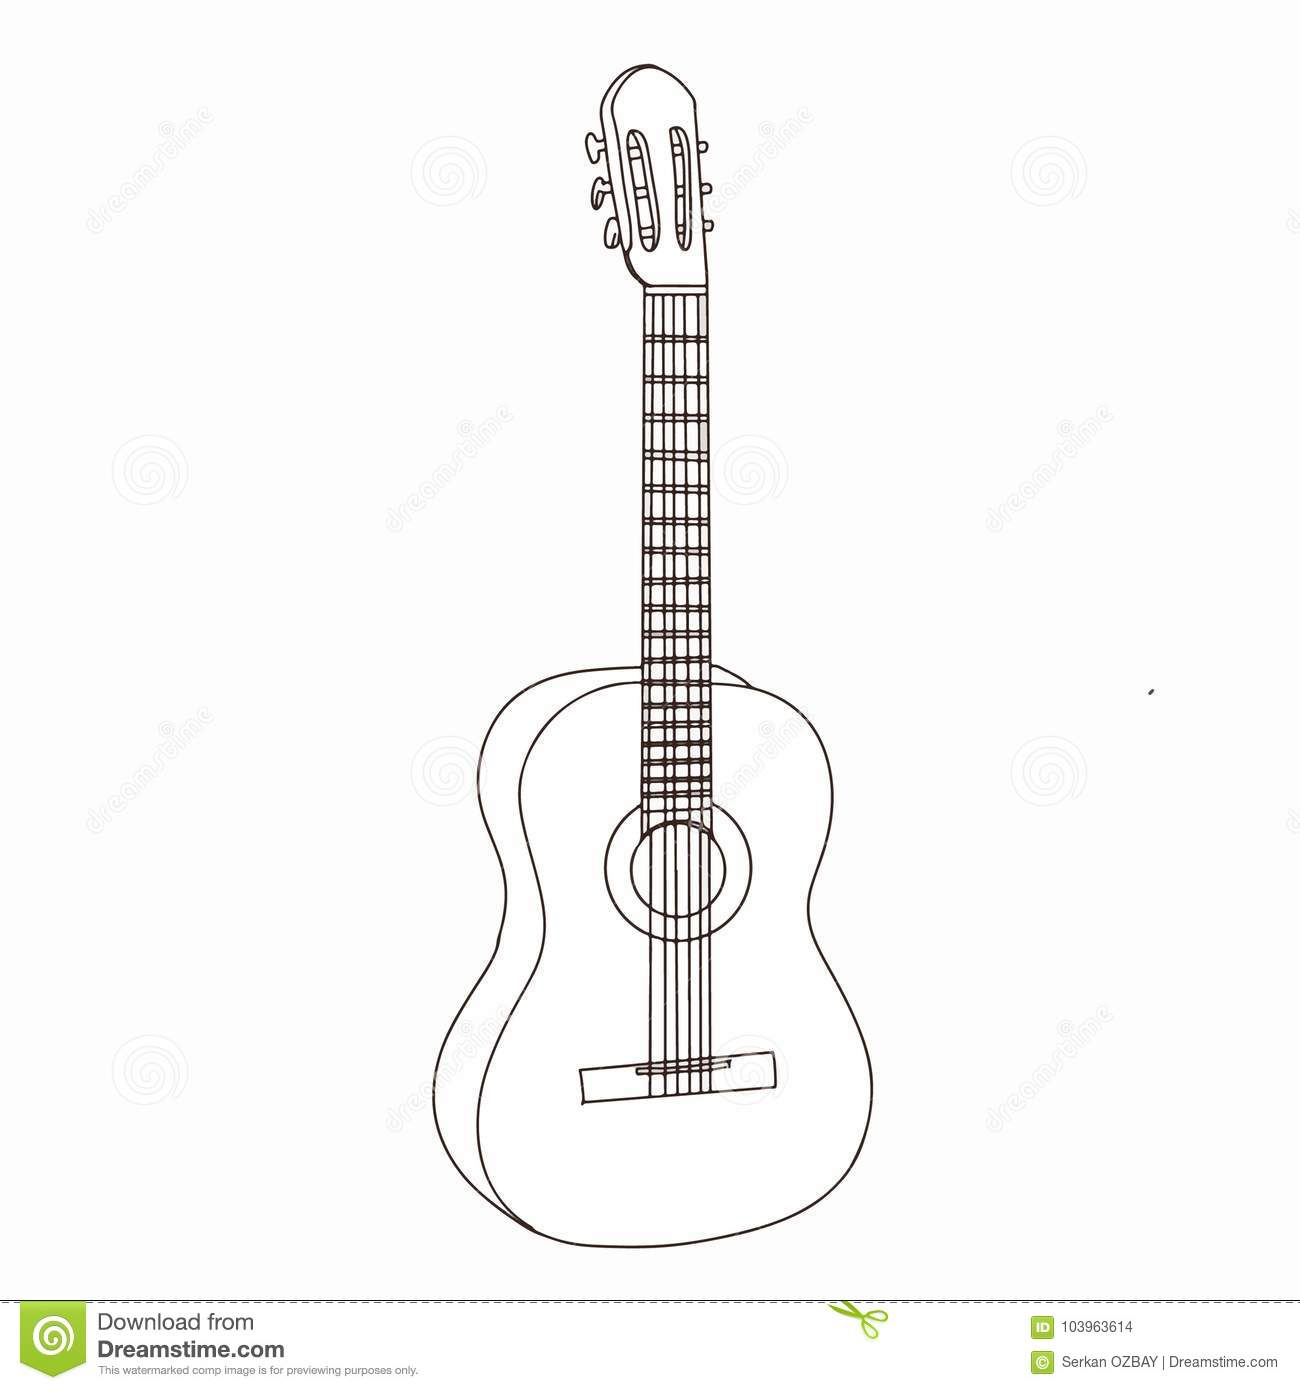 Guitar Realistic Cartoon Drawing And White Background Stock Illustration Illustration Of Musician Black 103963614